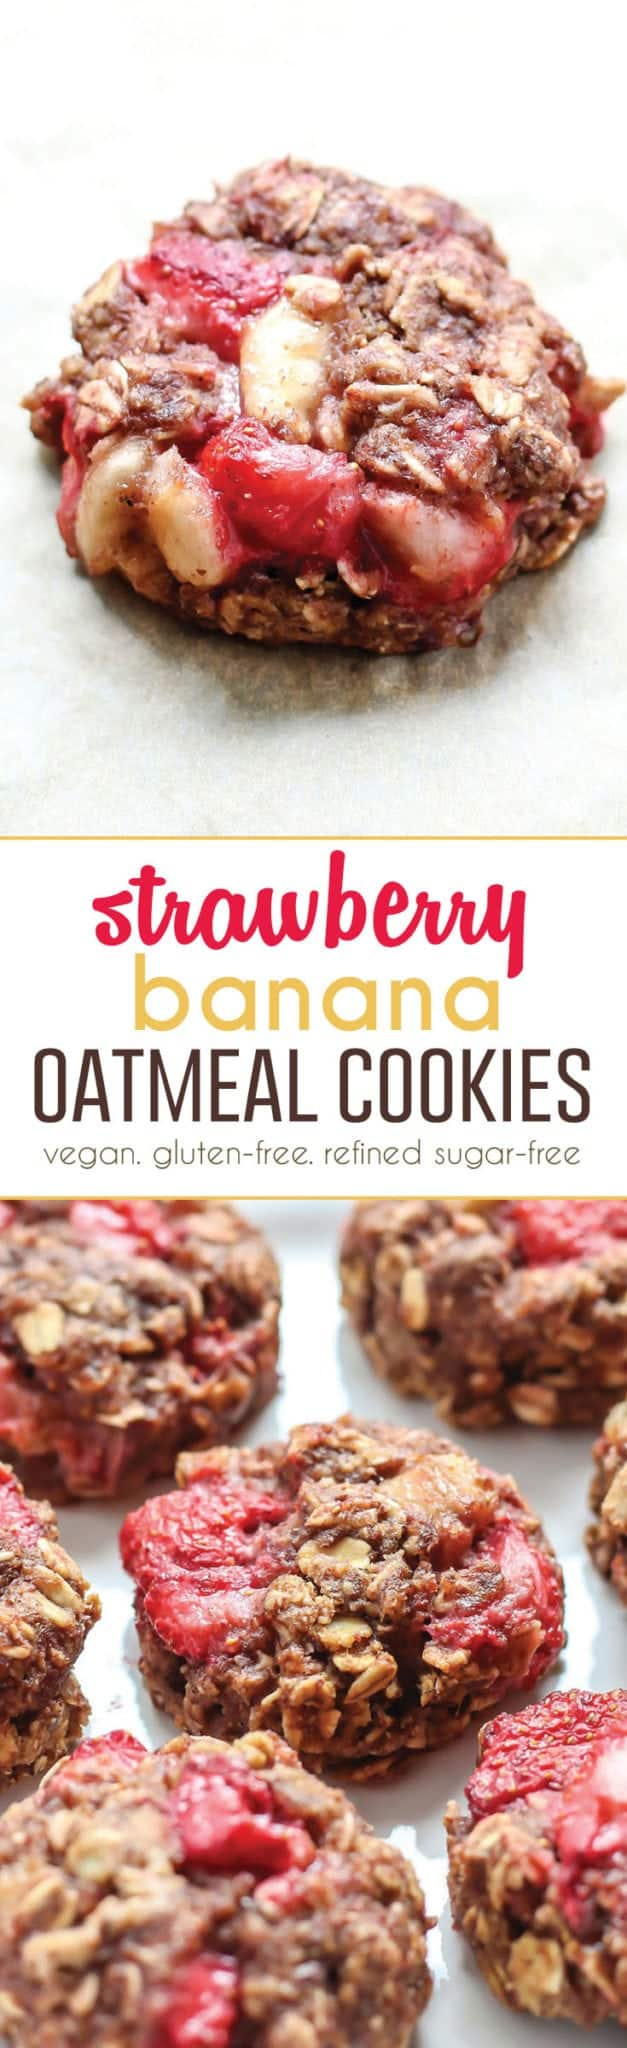 These healthy Strawberry Banana Oatmeal Cookies are packed with flavor. Plus they're vegan, gluten-free friendly, and refined sugar-free. The perfect snack or healthy start to your day.